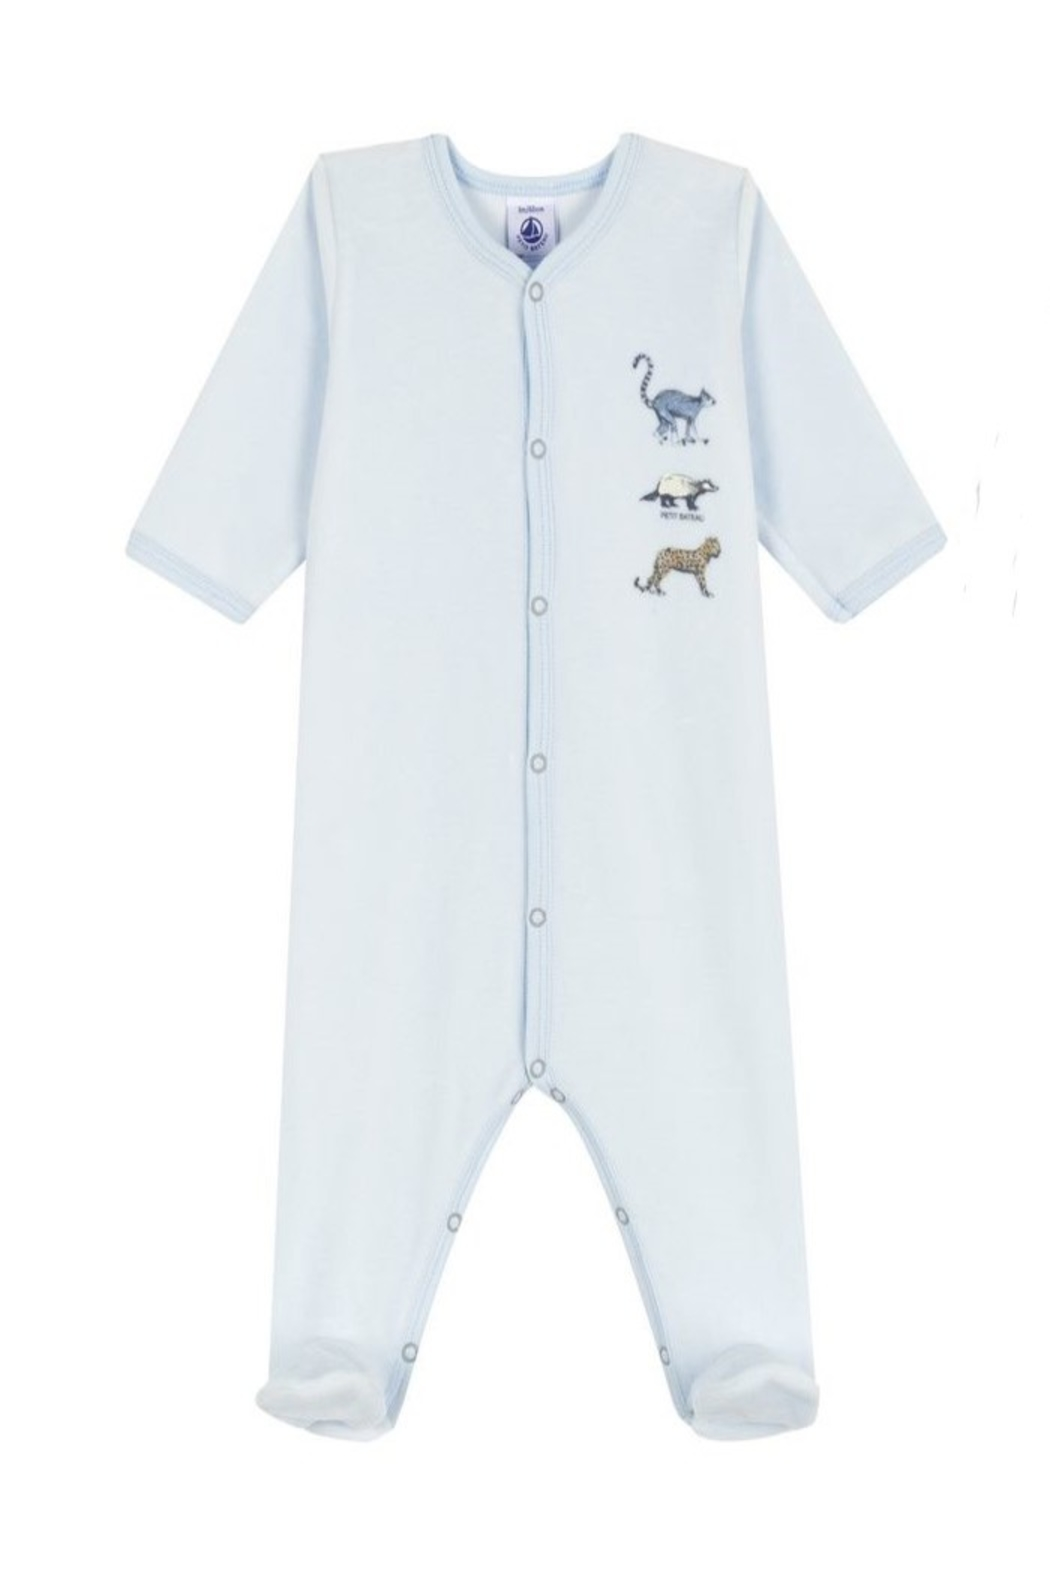 Petit Bateau Zoo Print Infant Sleepers - Front Cropped Image